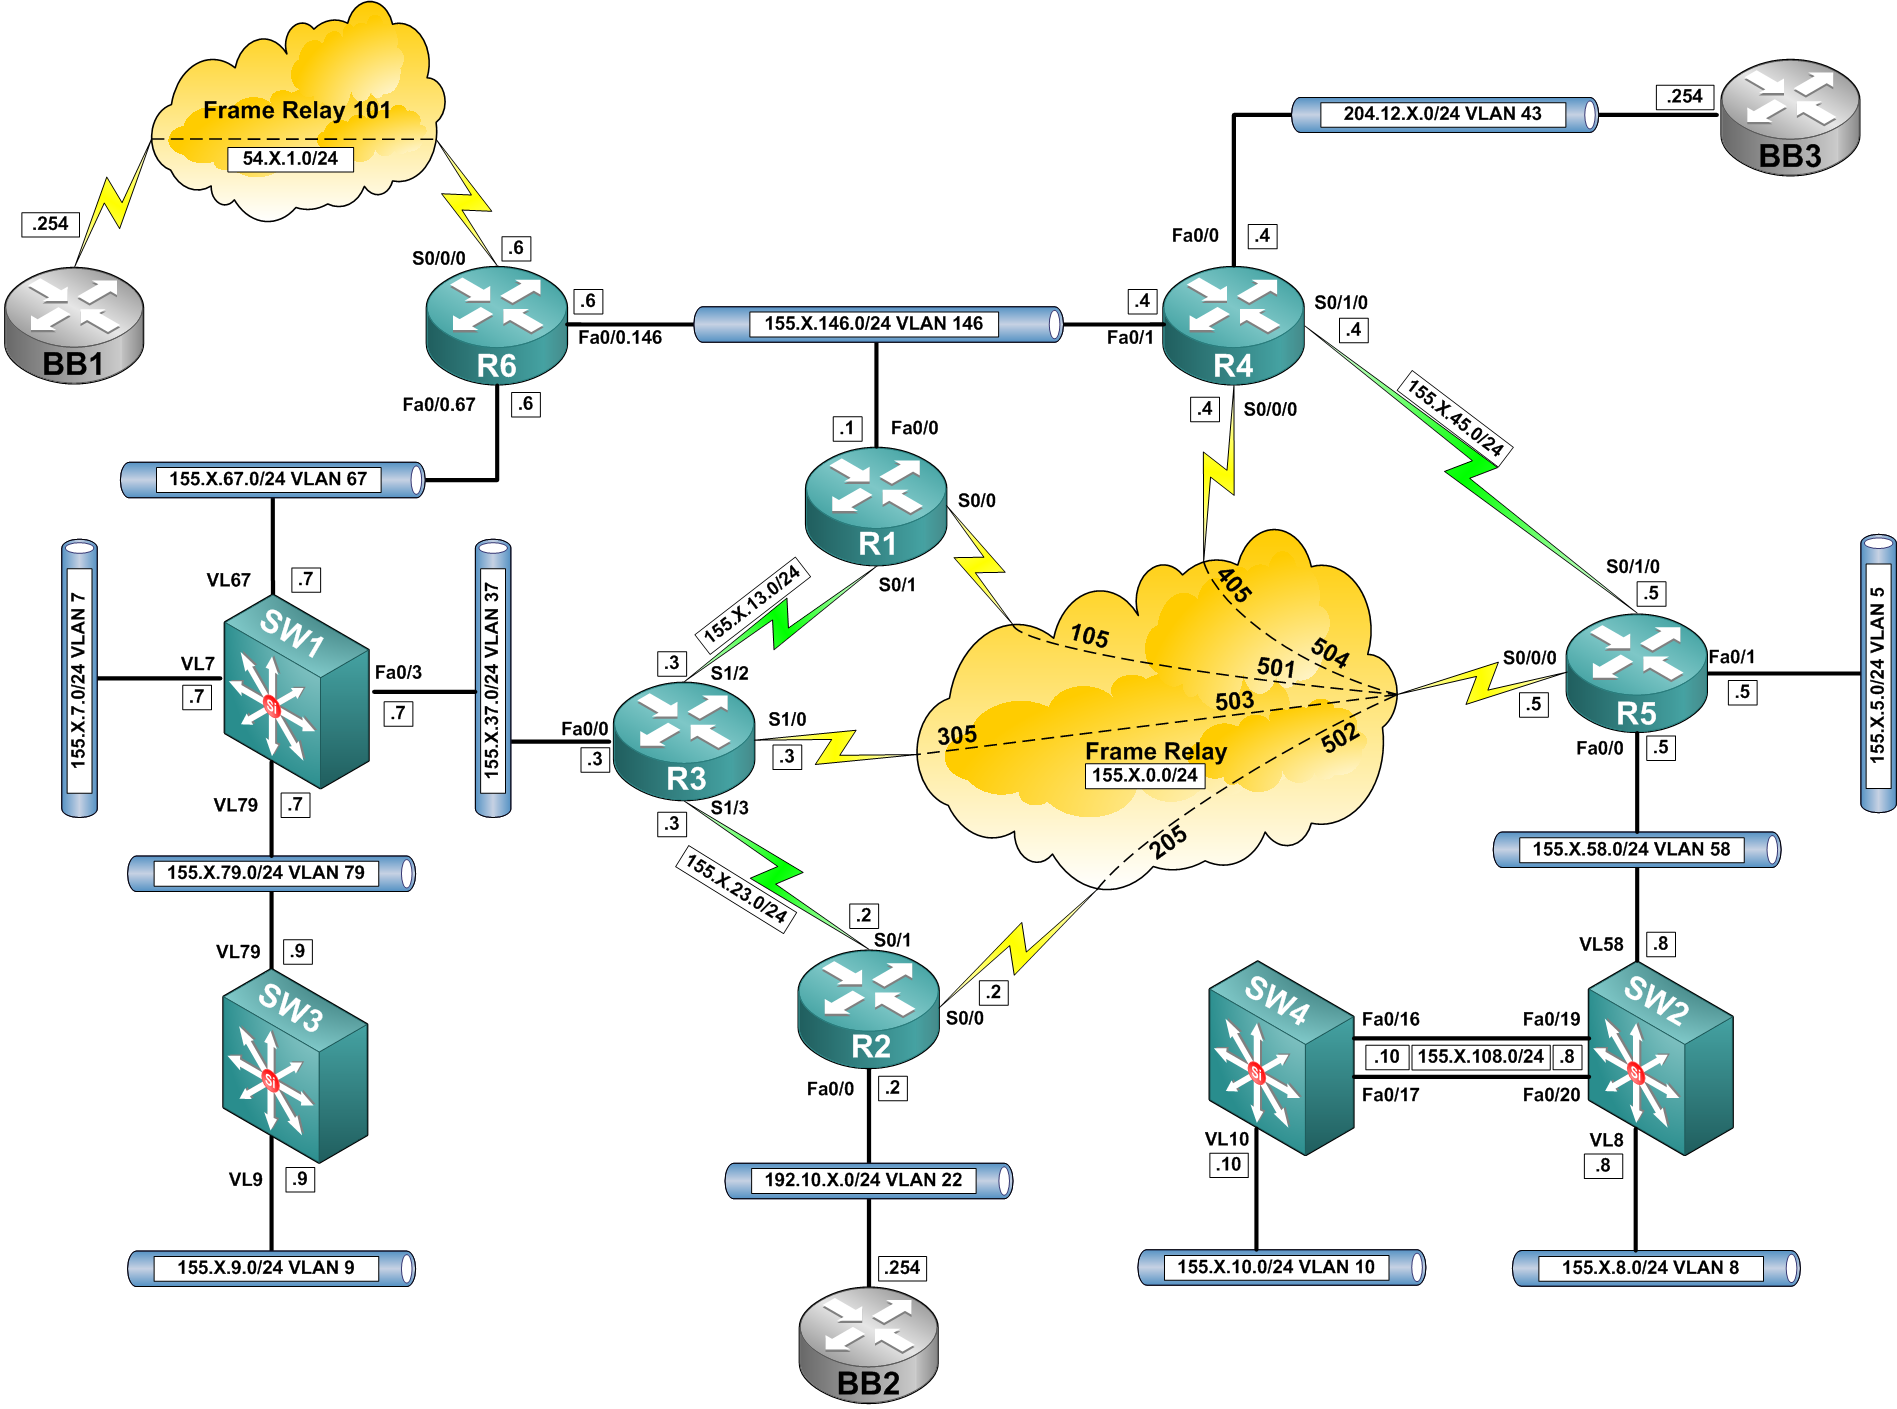 Troubleshooting Multicast Rpf Failure Daniels Networking Blog Basic Frame Relay Commands The